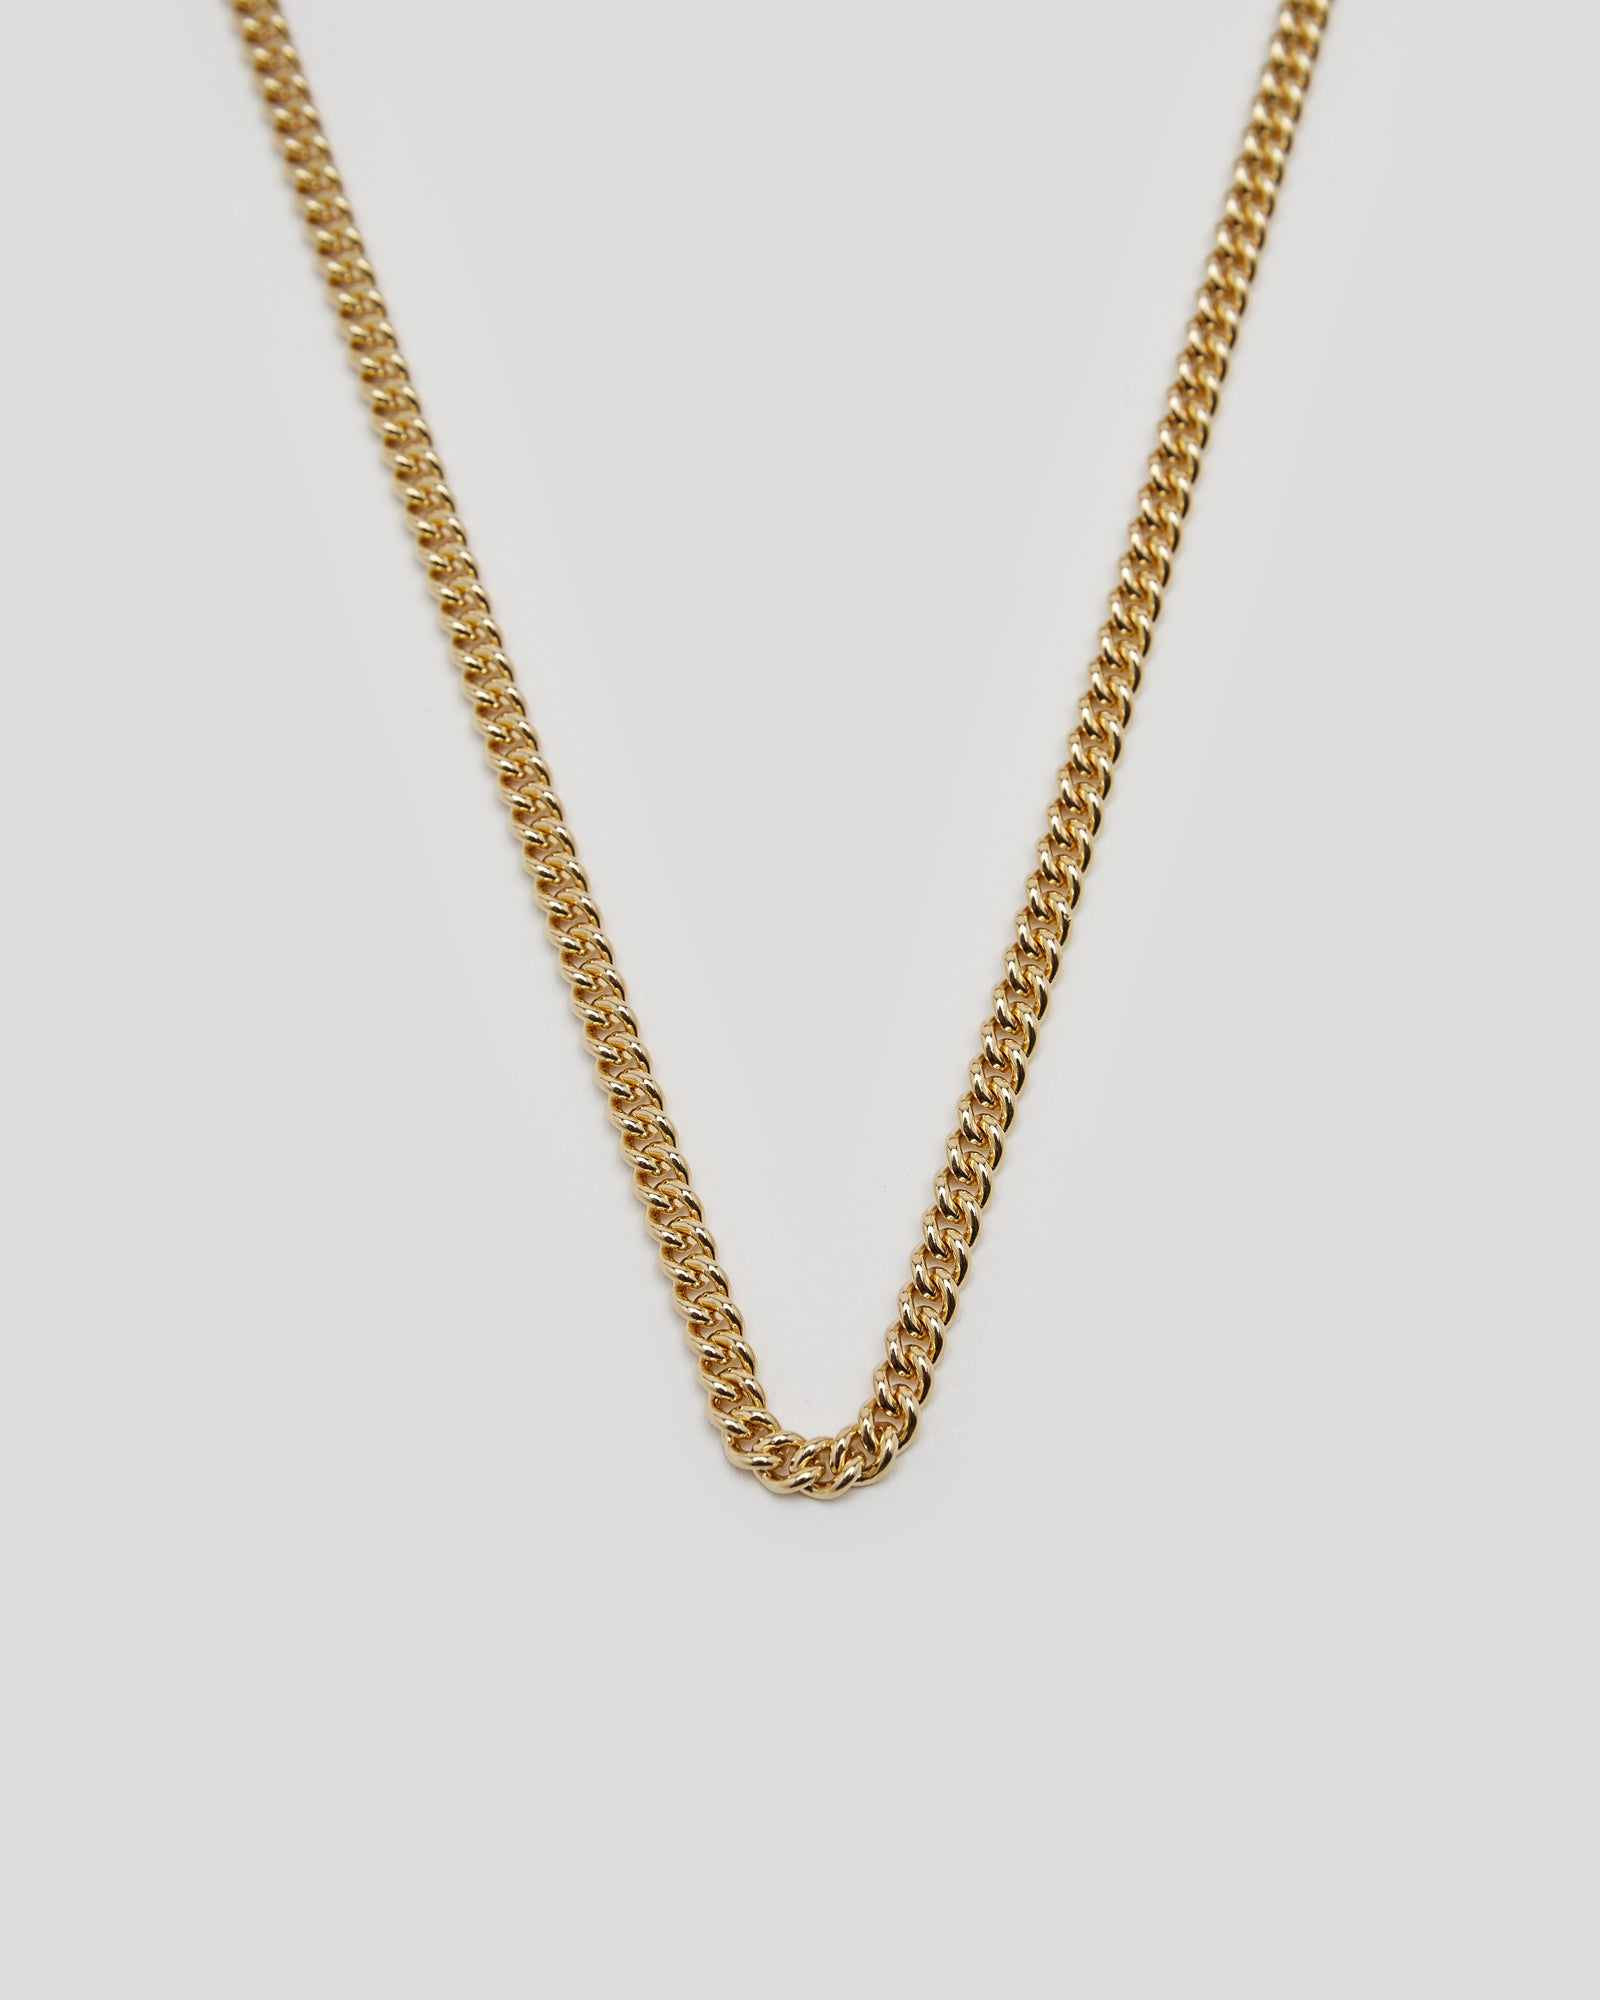 Rounded Curb Chain Thin in Gold